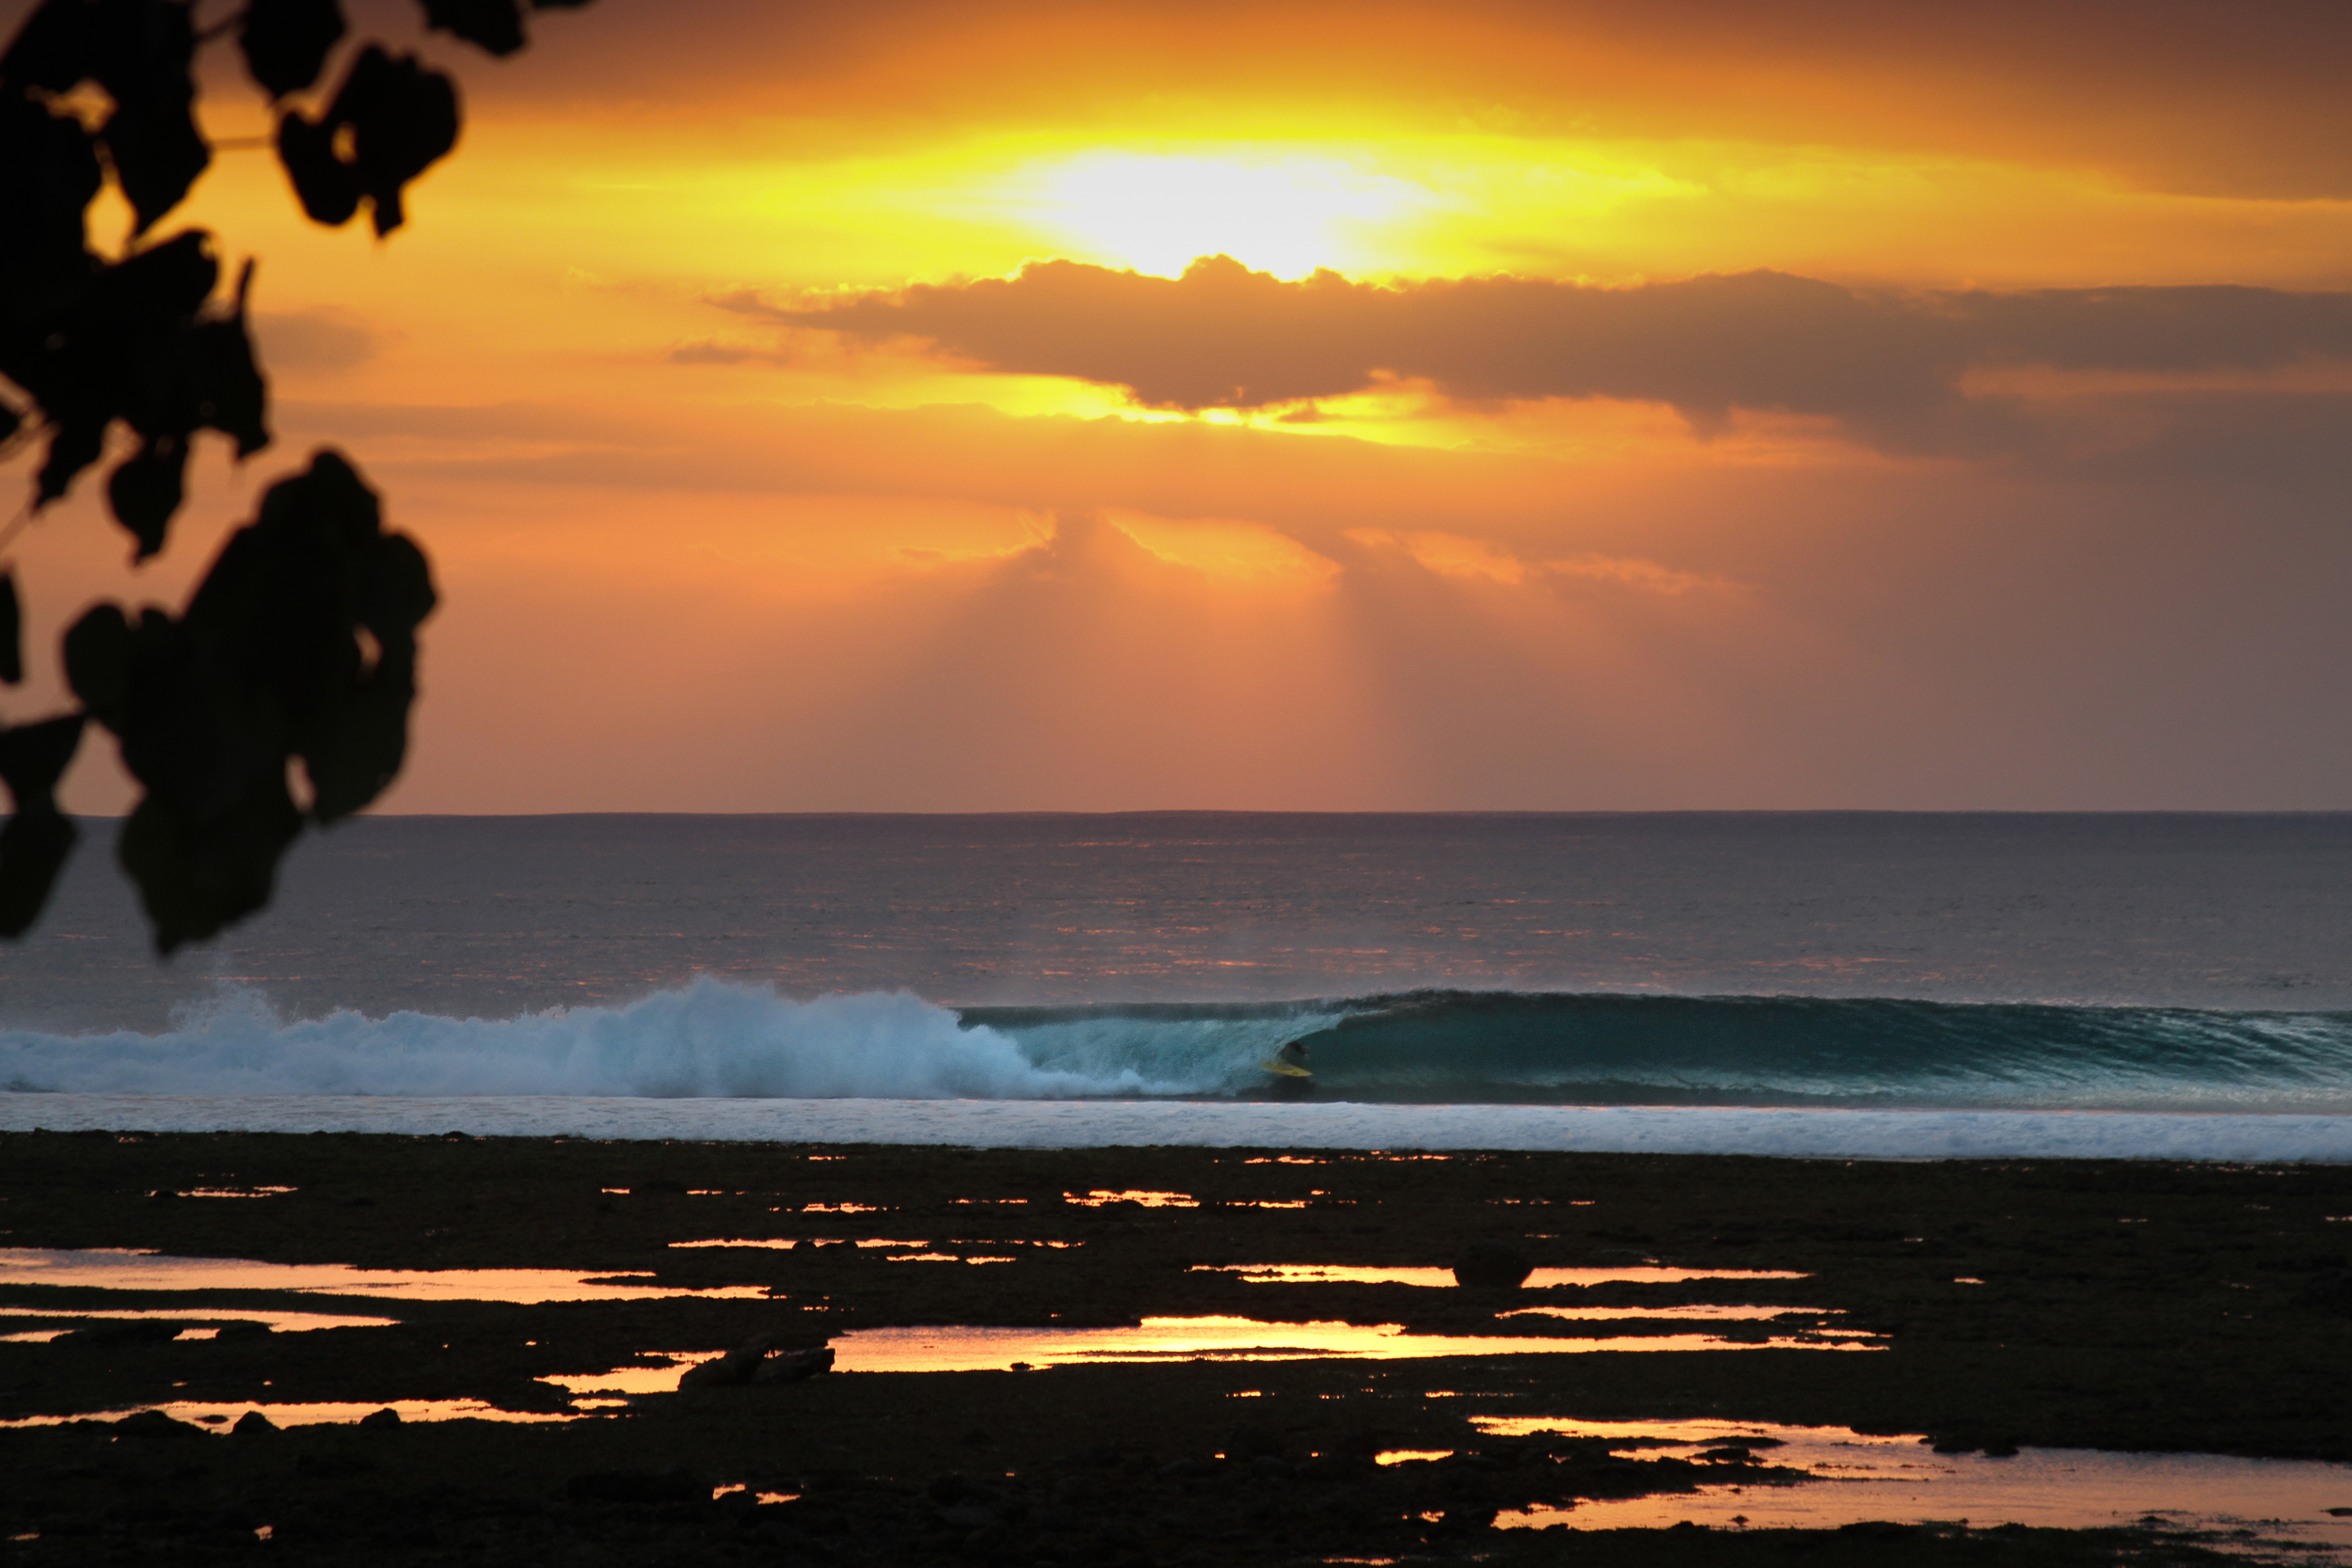 Sunset barrels at Desert Point, Lombok, Indonesia